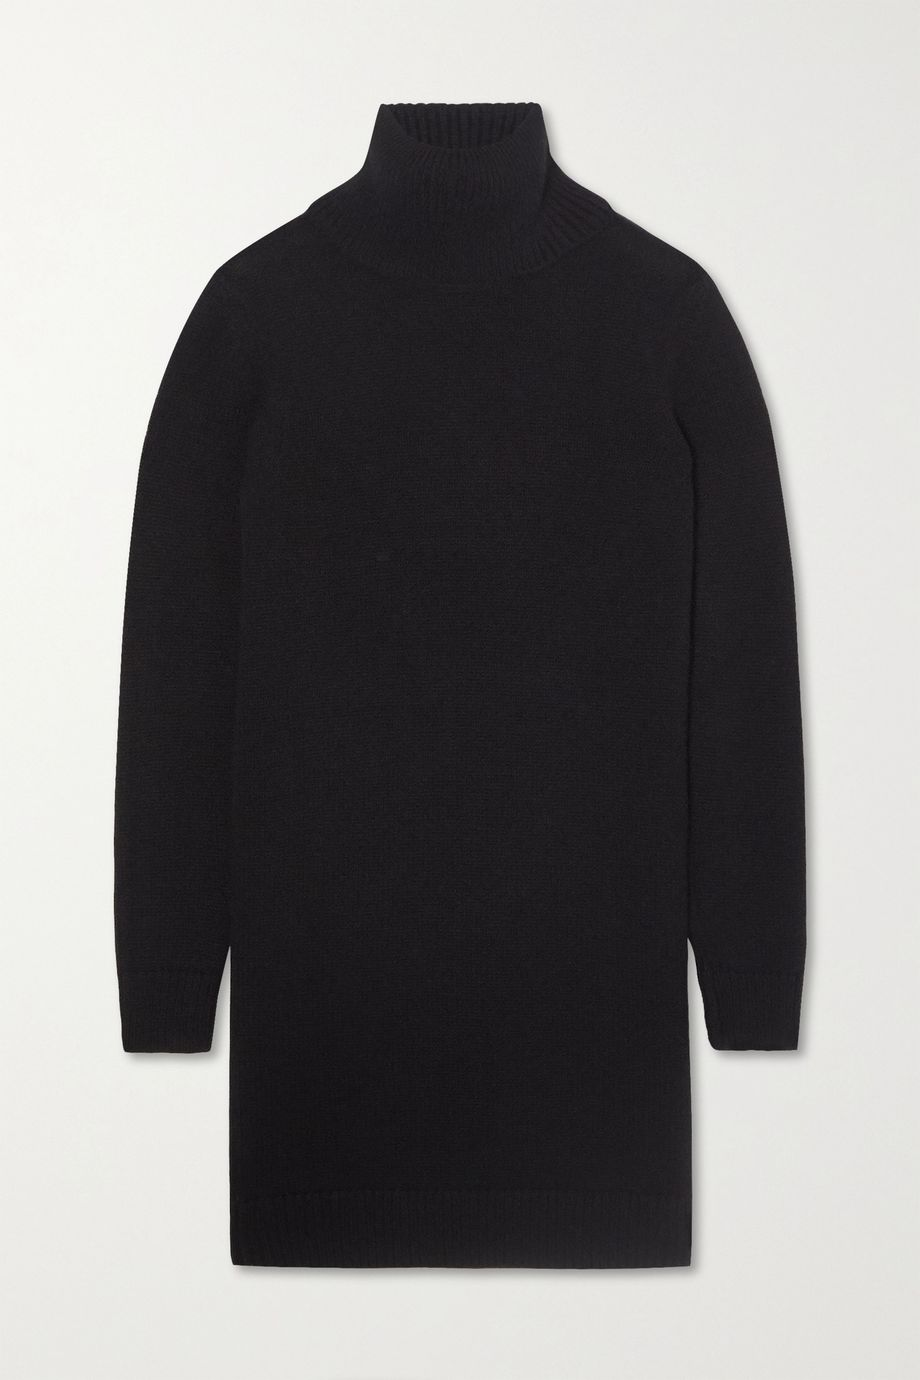 SAINT LAURENT Cashmere turtleneck mini dress